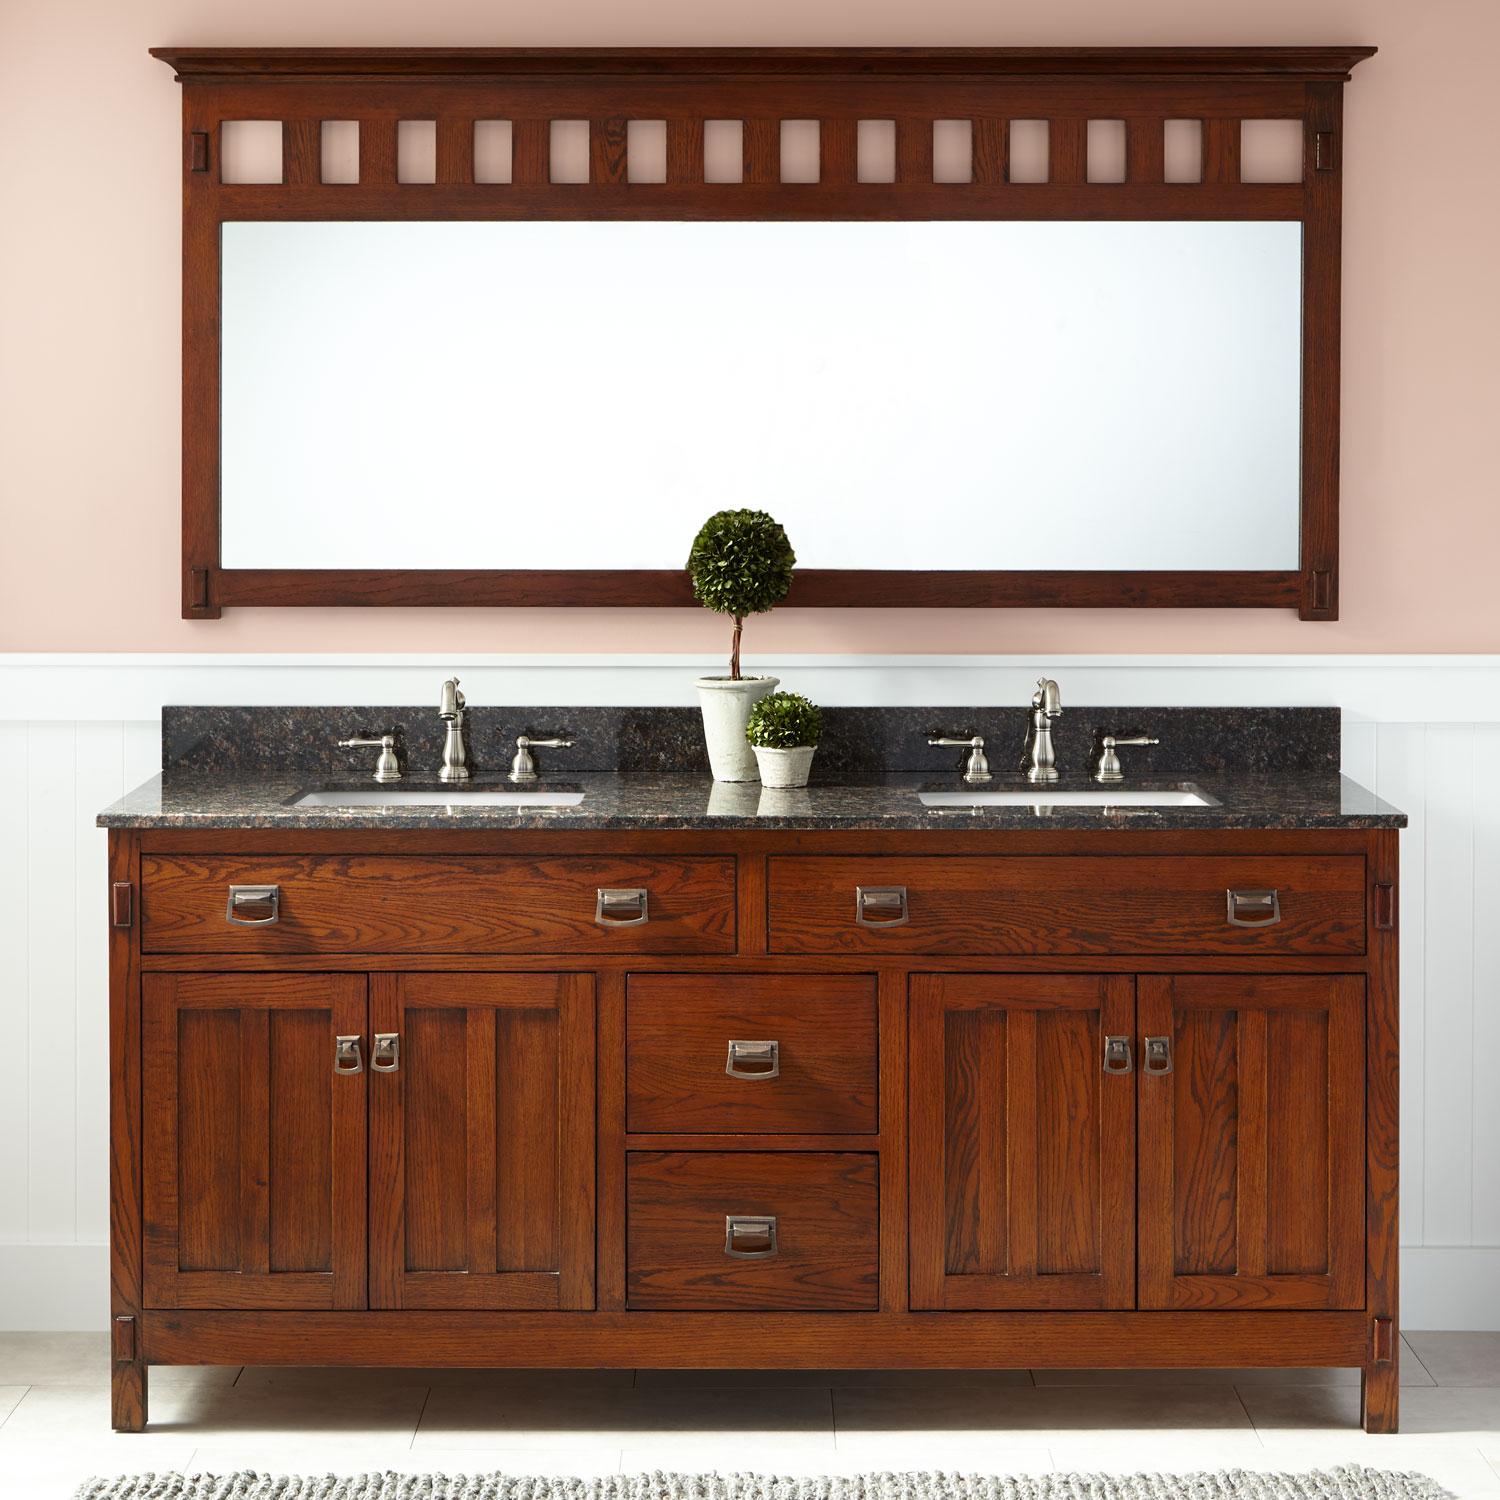 Mission Style Bathroom Vanity You Ll Love In 2021 Visualhunt